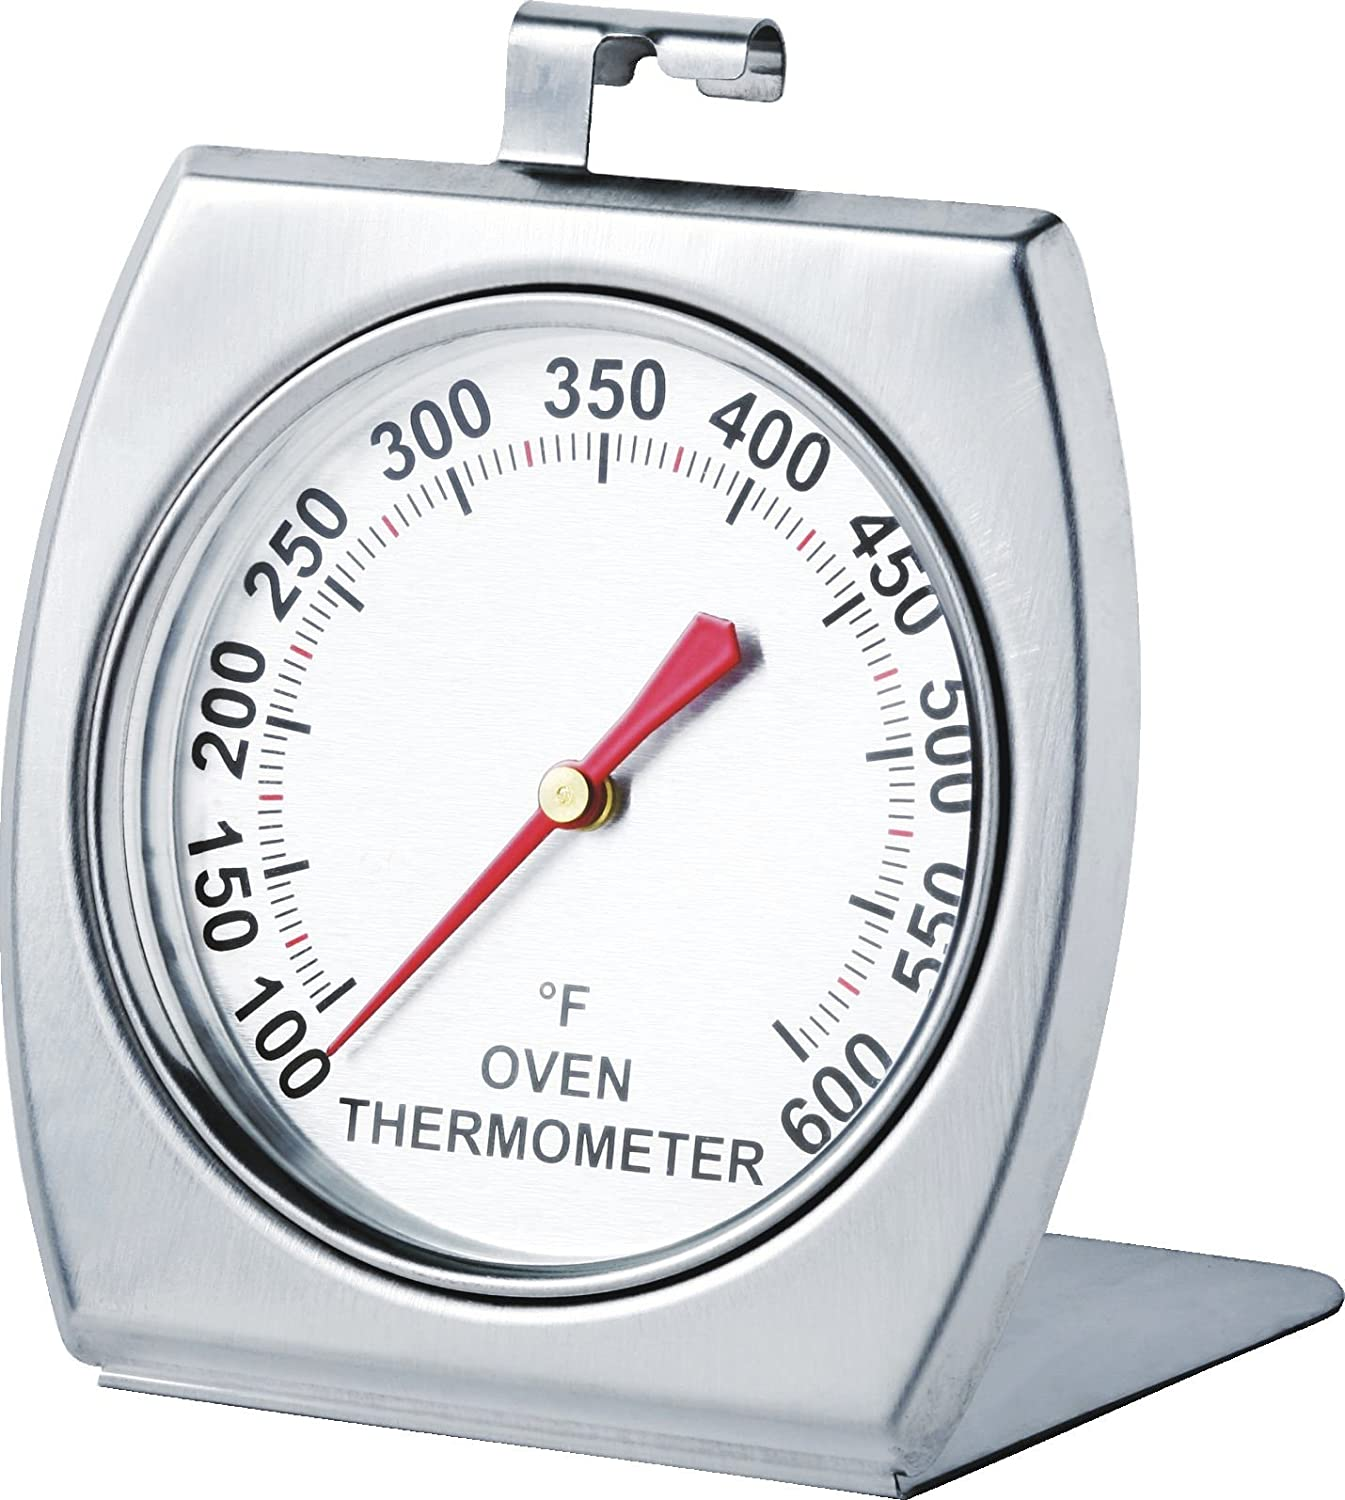 Admetior Kitchen Oven Large Dial Thermometer